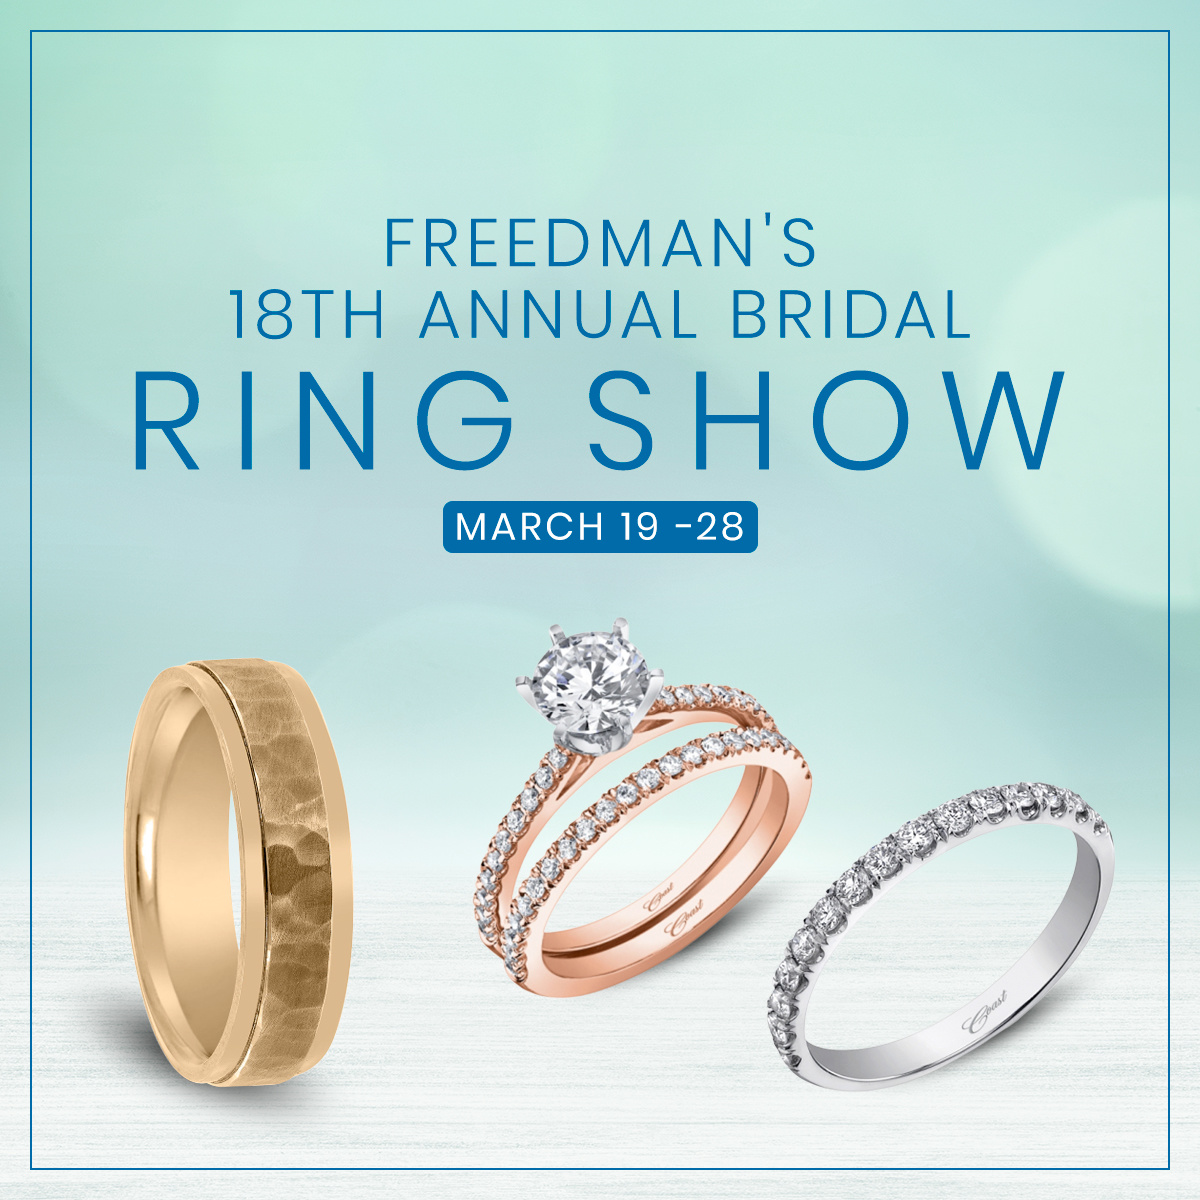 Freedman's 18th Annual Wedding Ring Trunk Show March 19-28, 2020